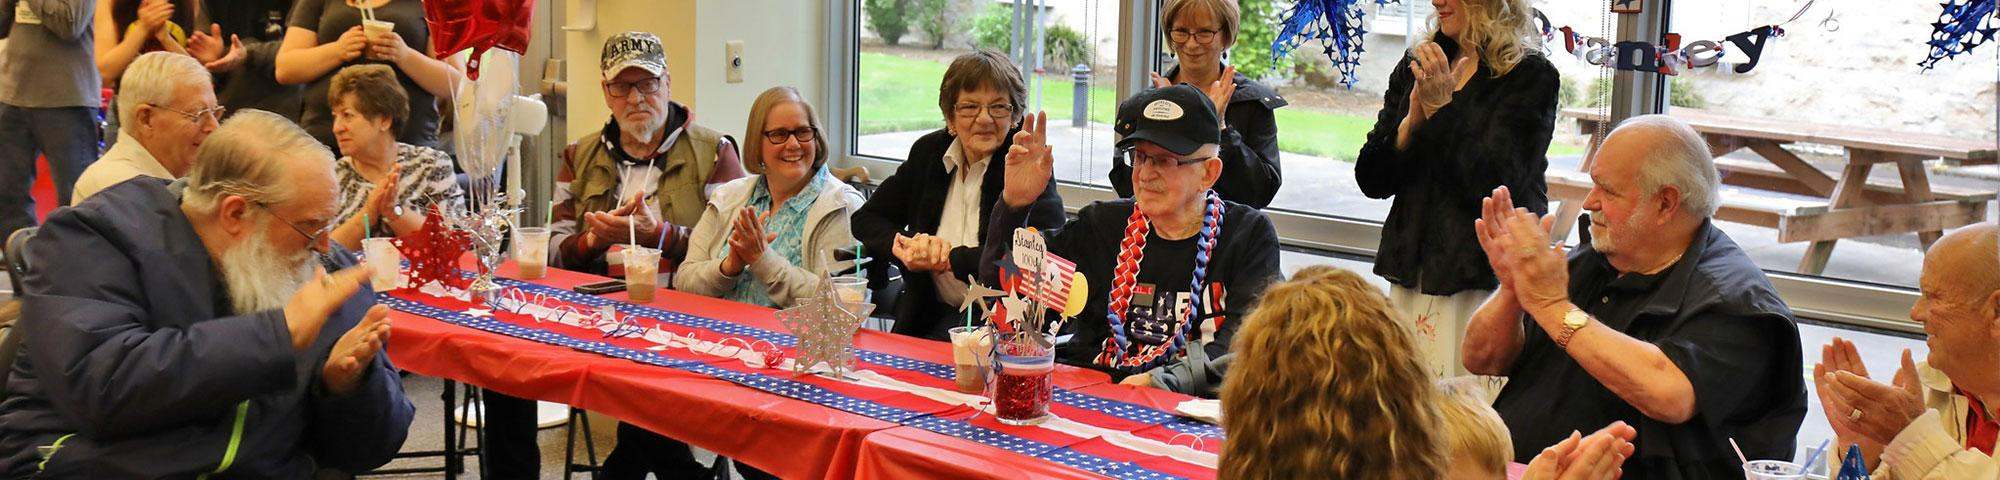 Stanley celebrates his 100th birthday - Port Orchard Veterans Home